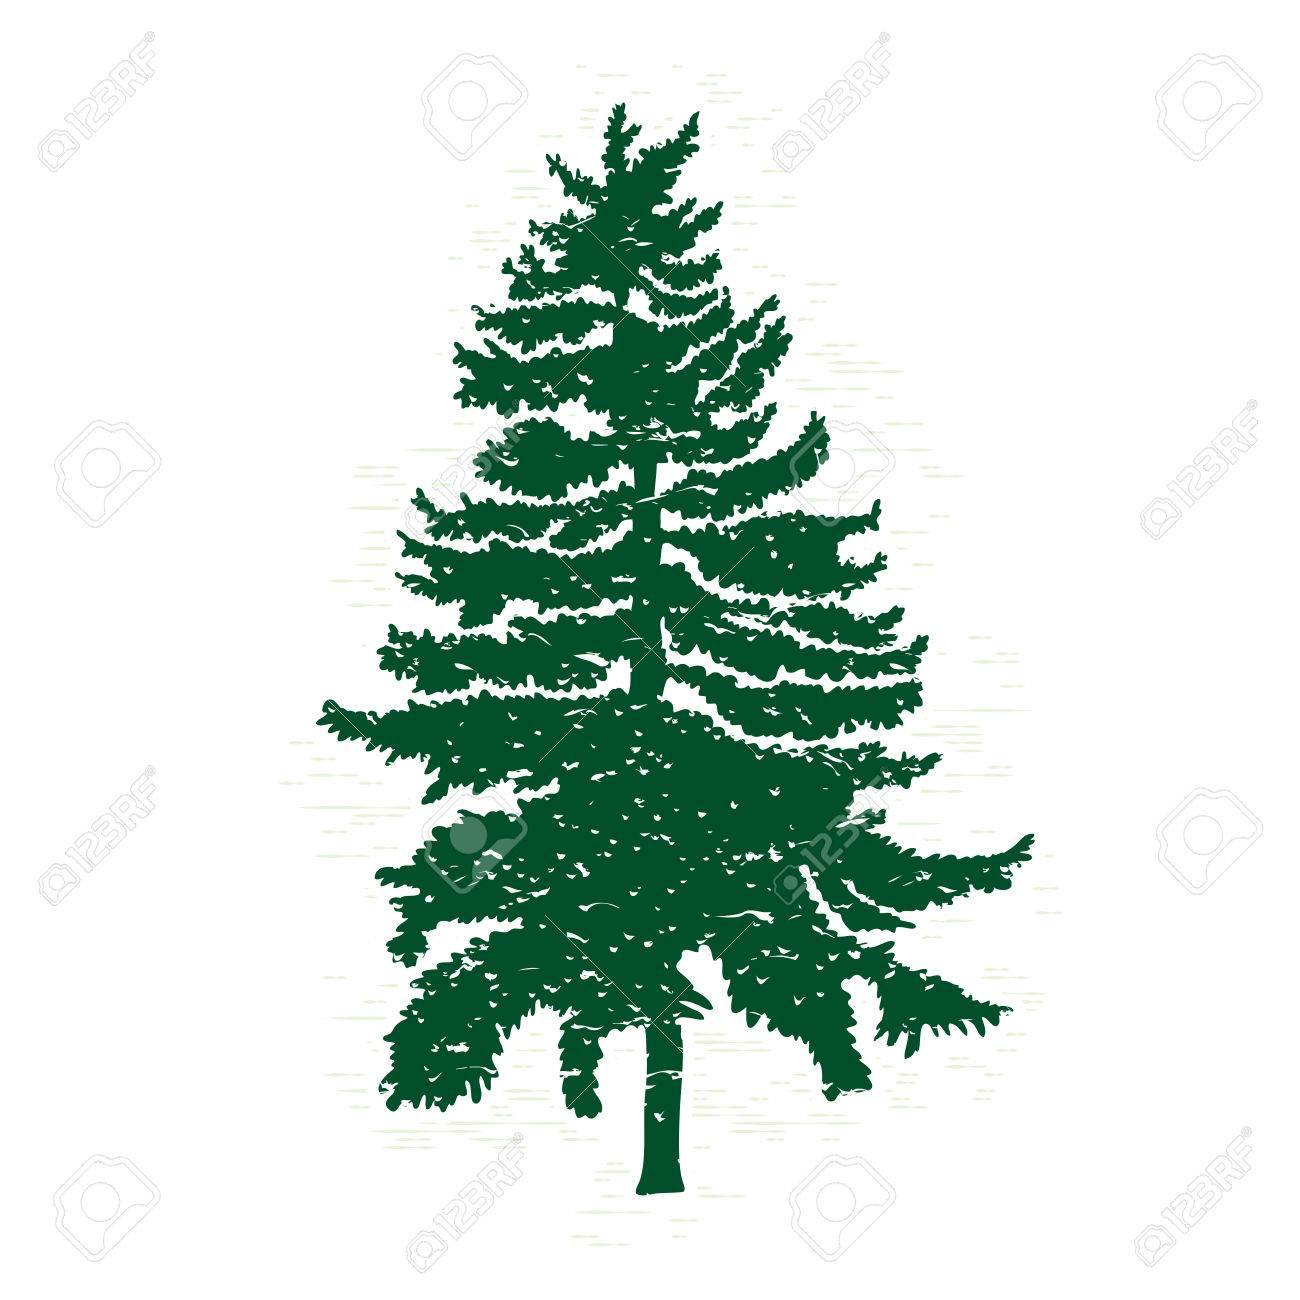 vector evergreen silhouette of pine and fir tree conifer tree rh 123rf com pine trees vector silhouette vector pine trees